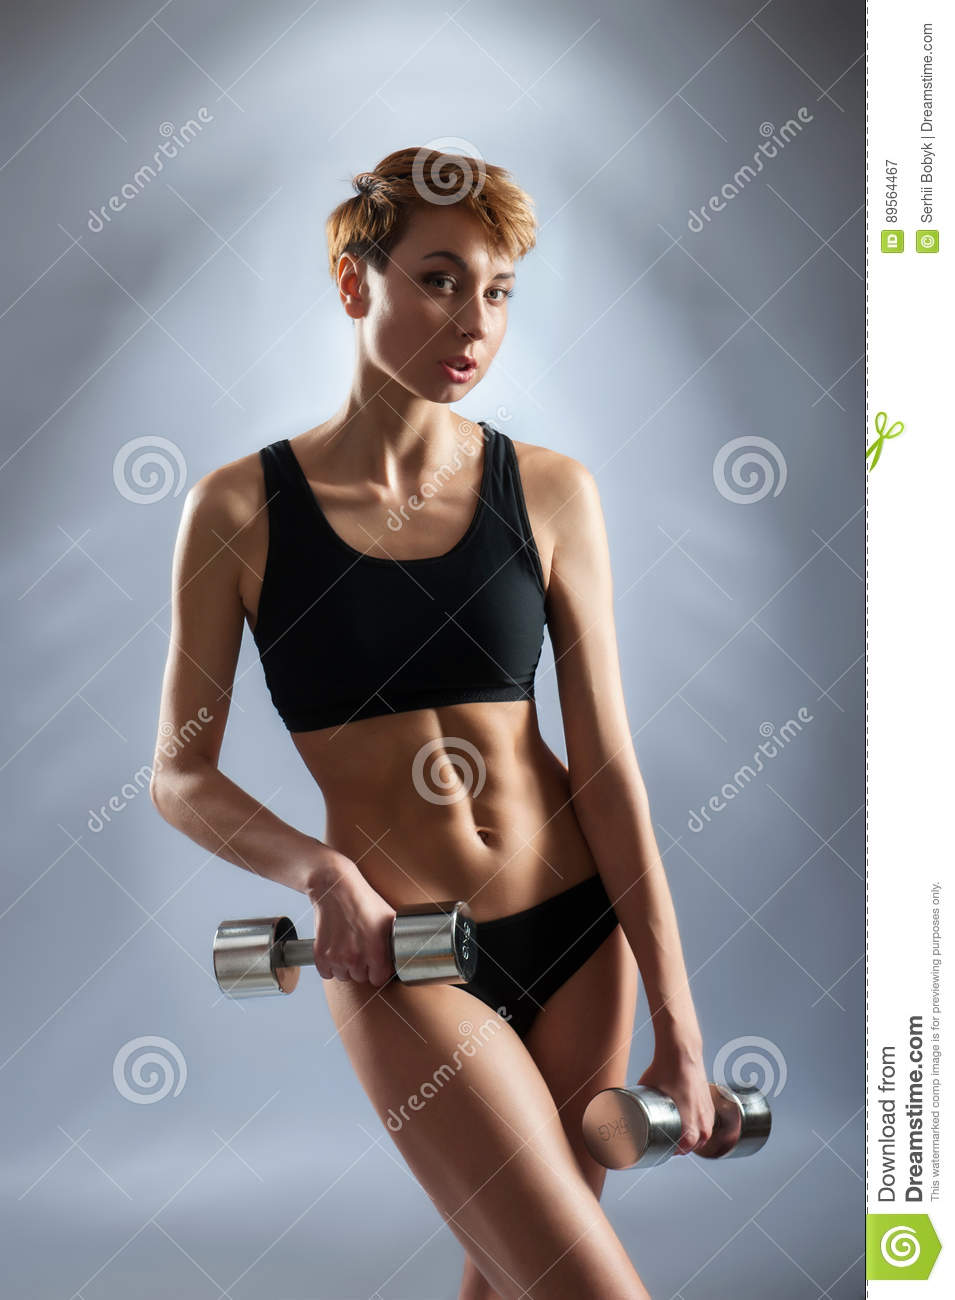 Young Short Haired Fitness Woman Posing With Dumbbells